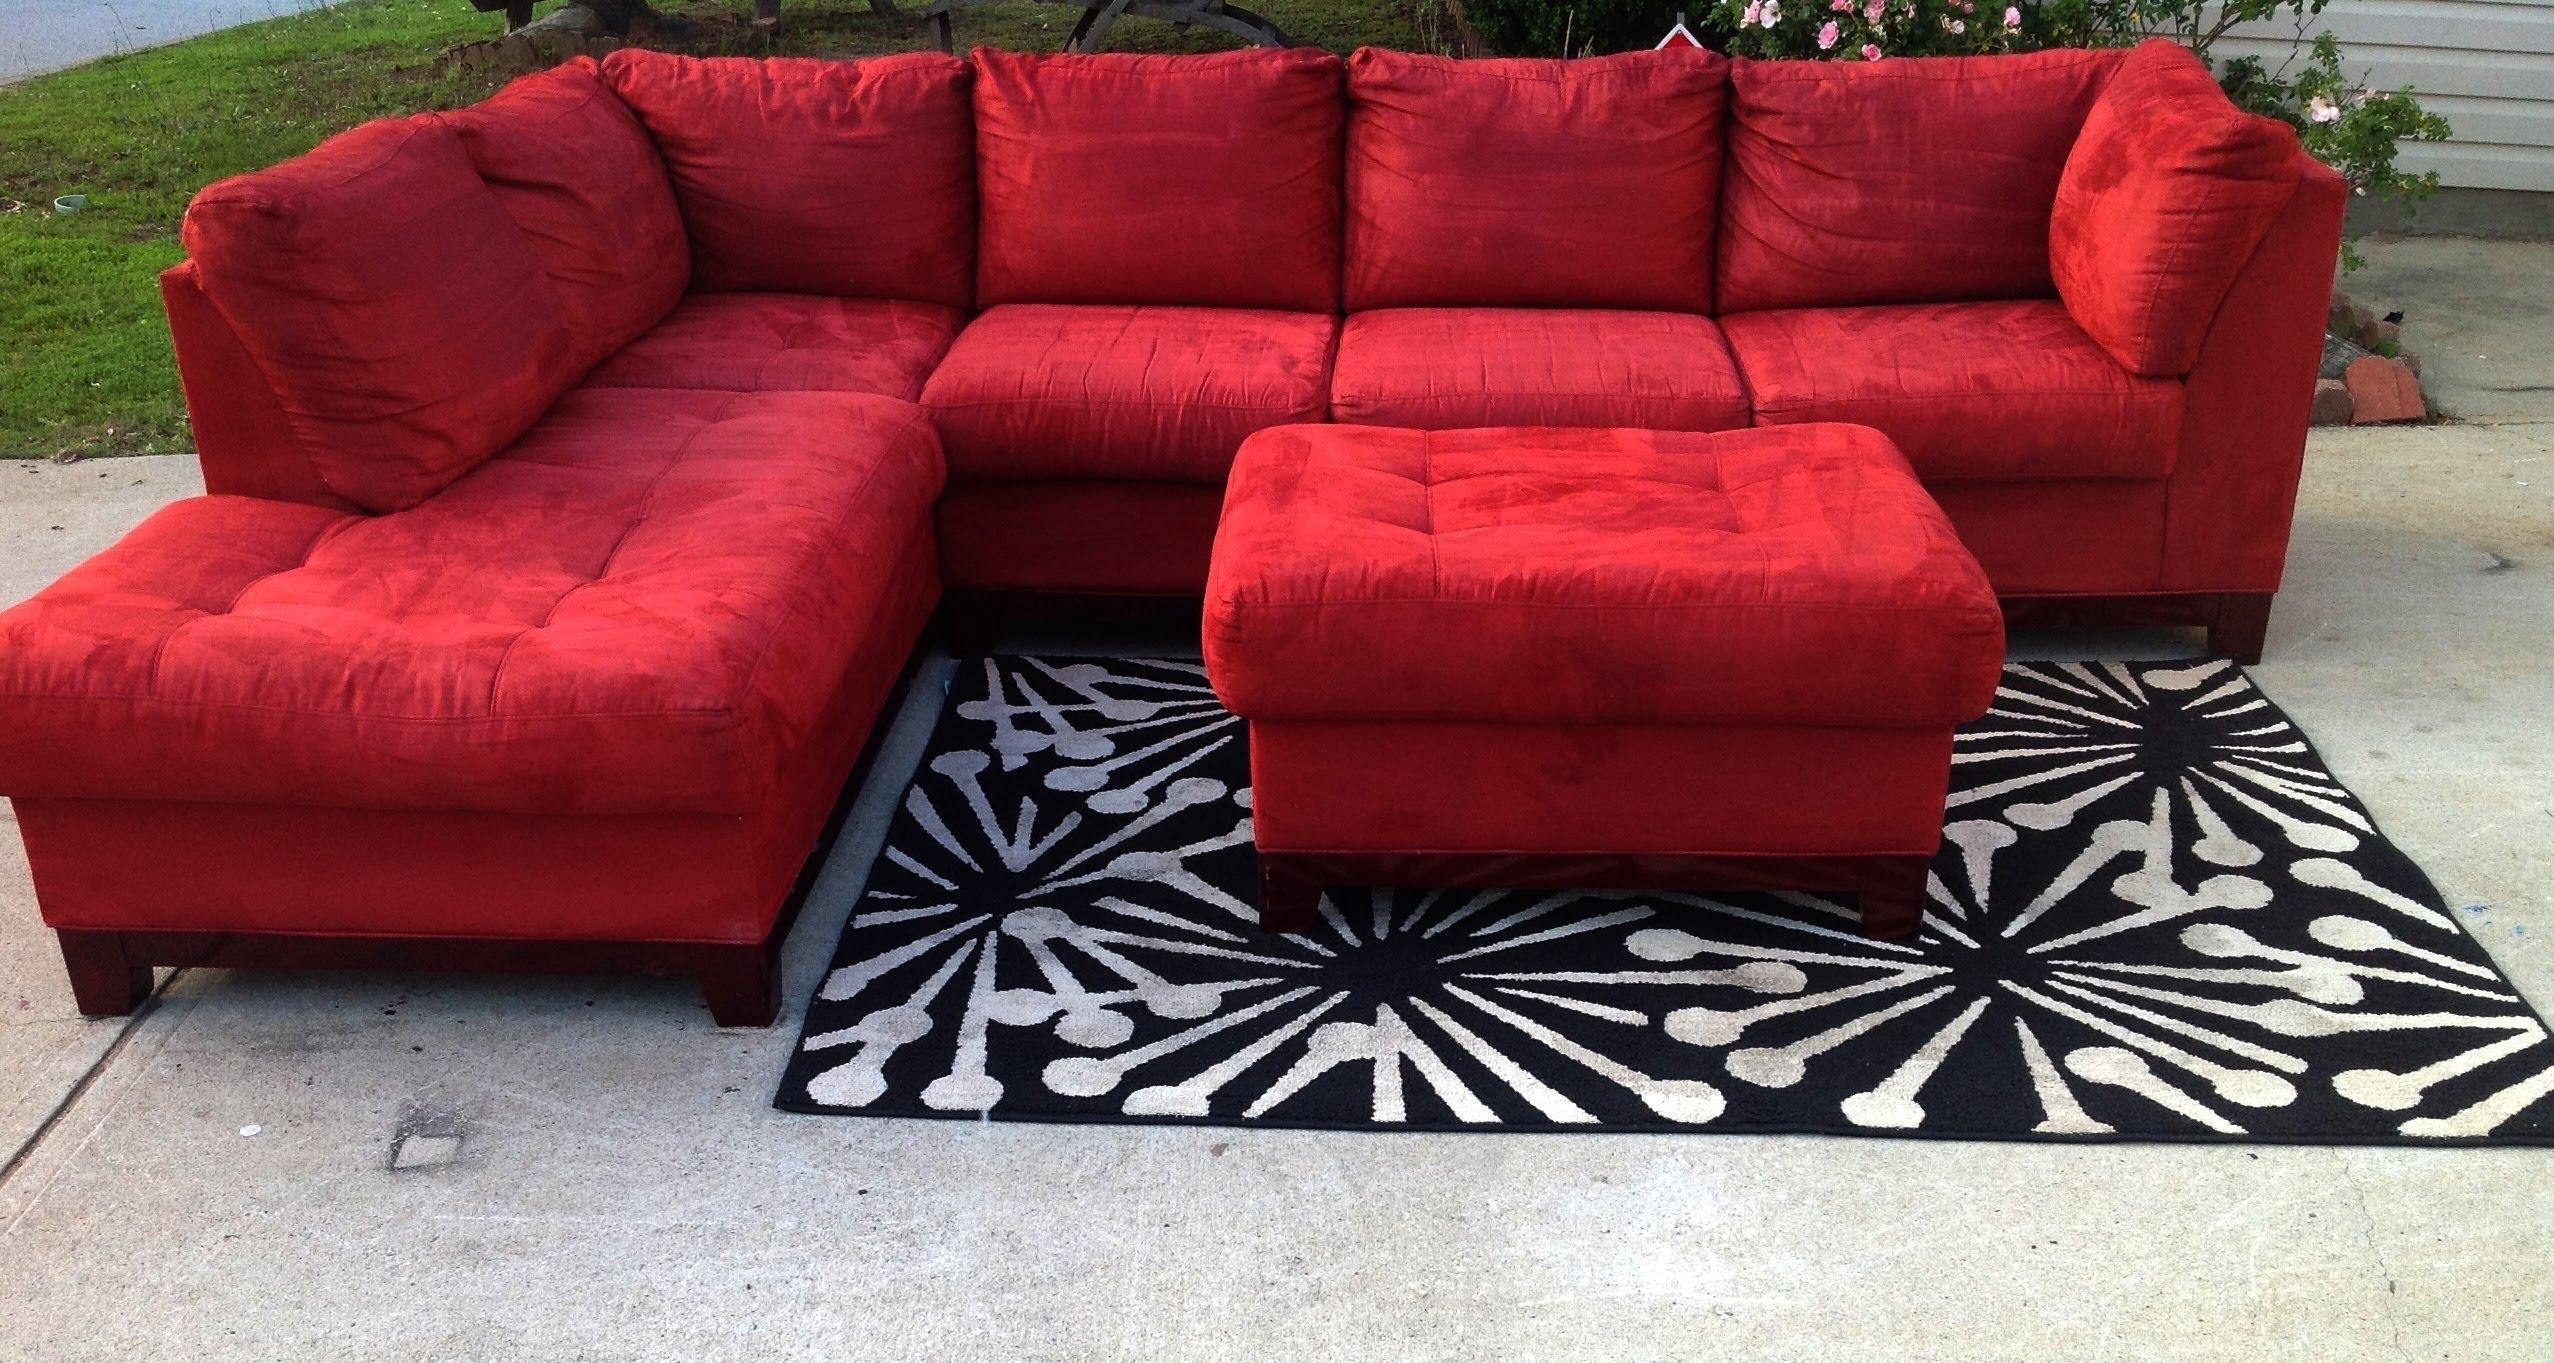 Red Cindy Crawford Stlye Sectional 475 – Youtube For Cindy Crawford Sleeper Sofas (View 16 of 20)